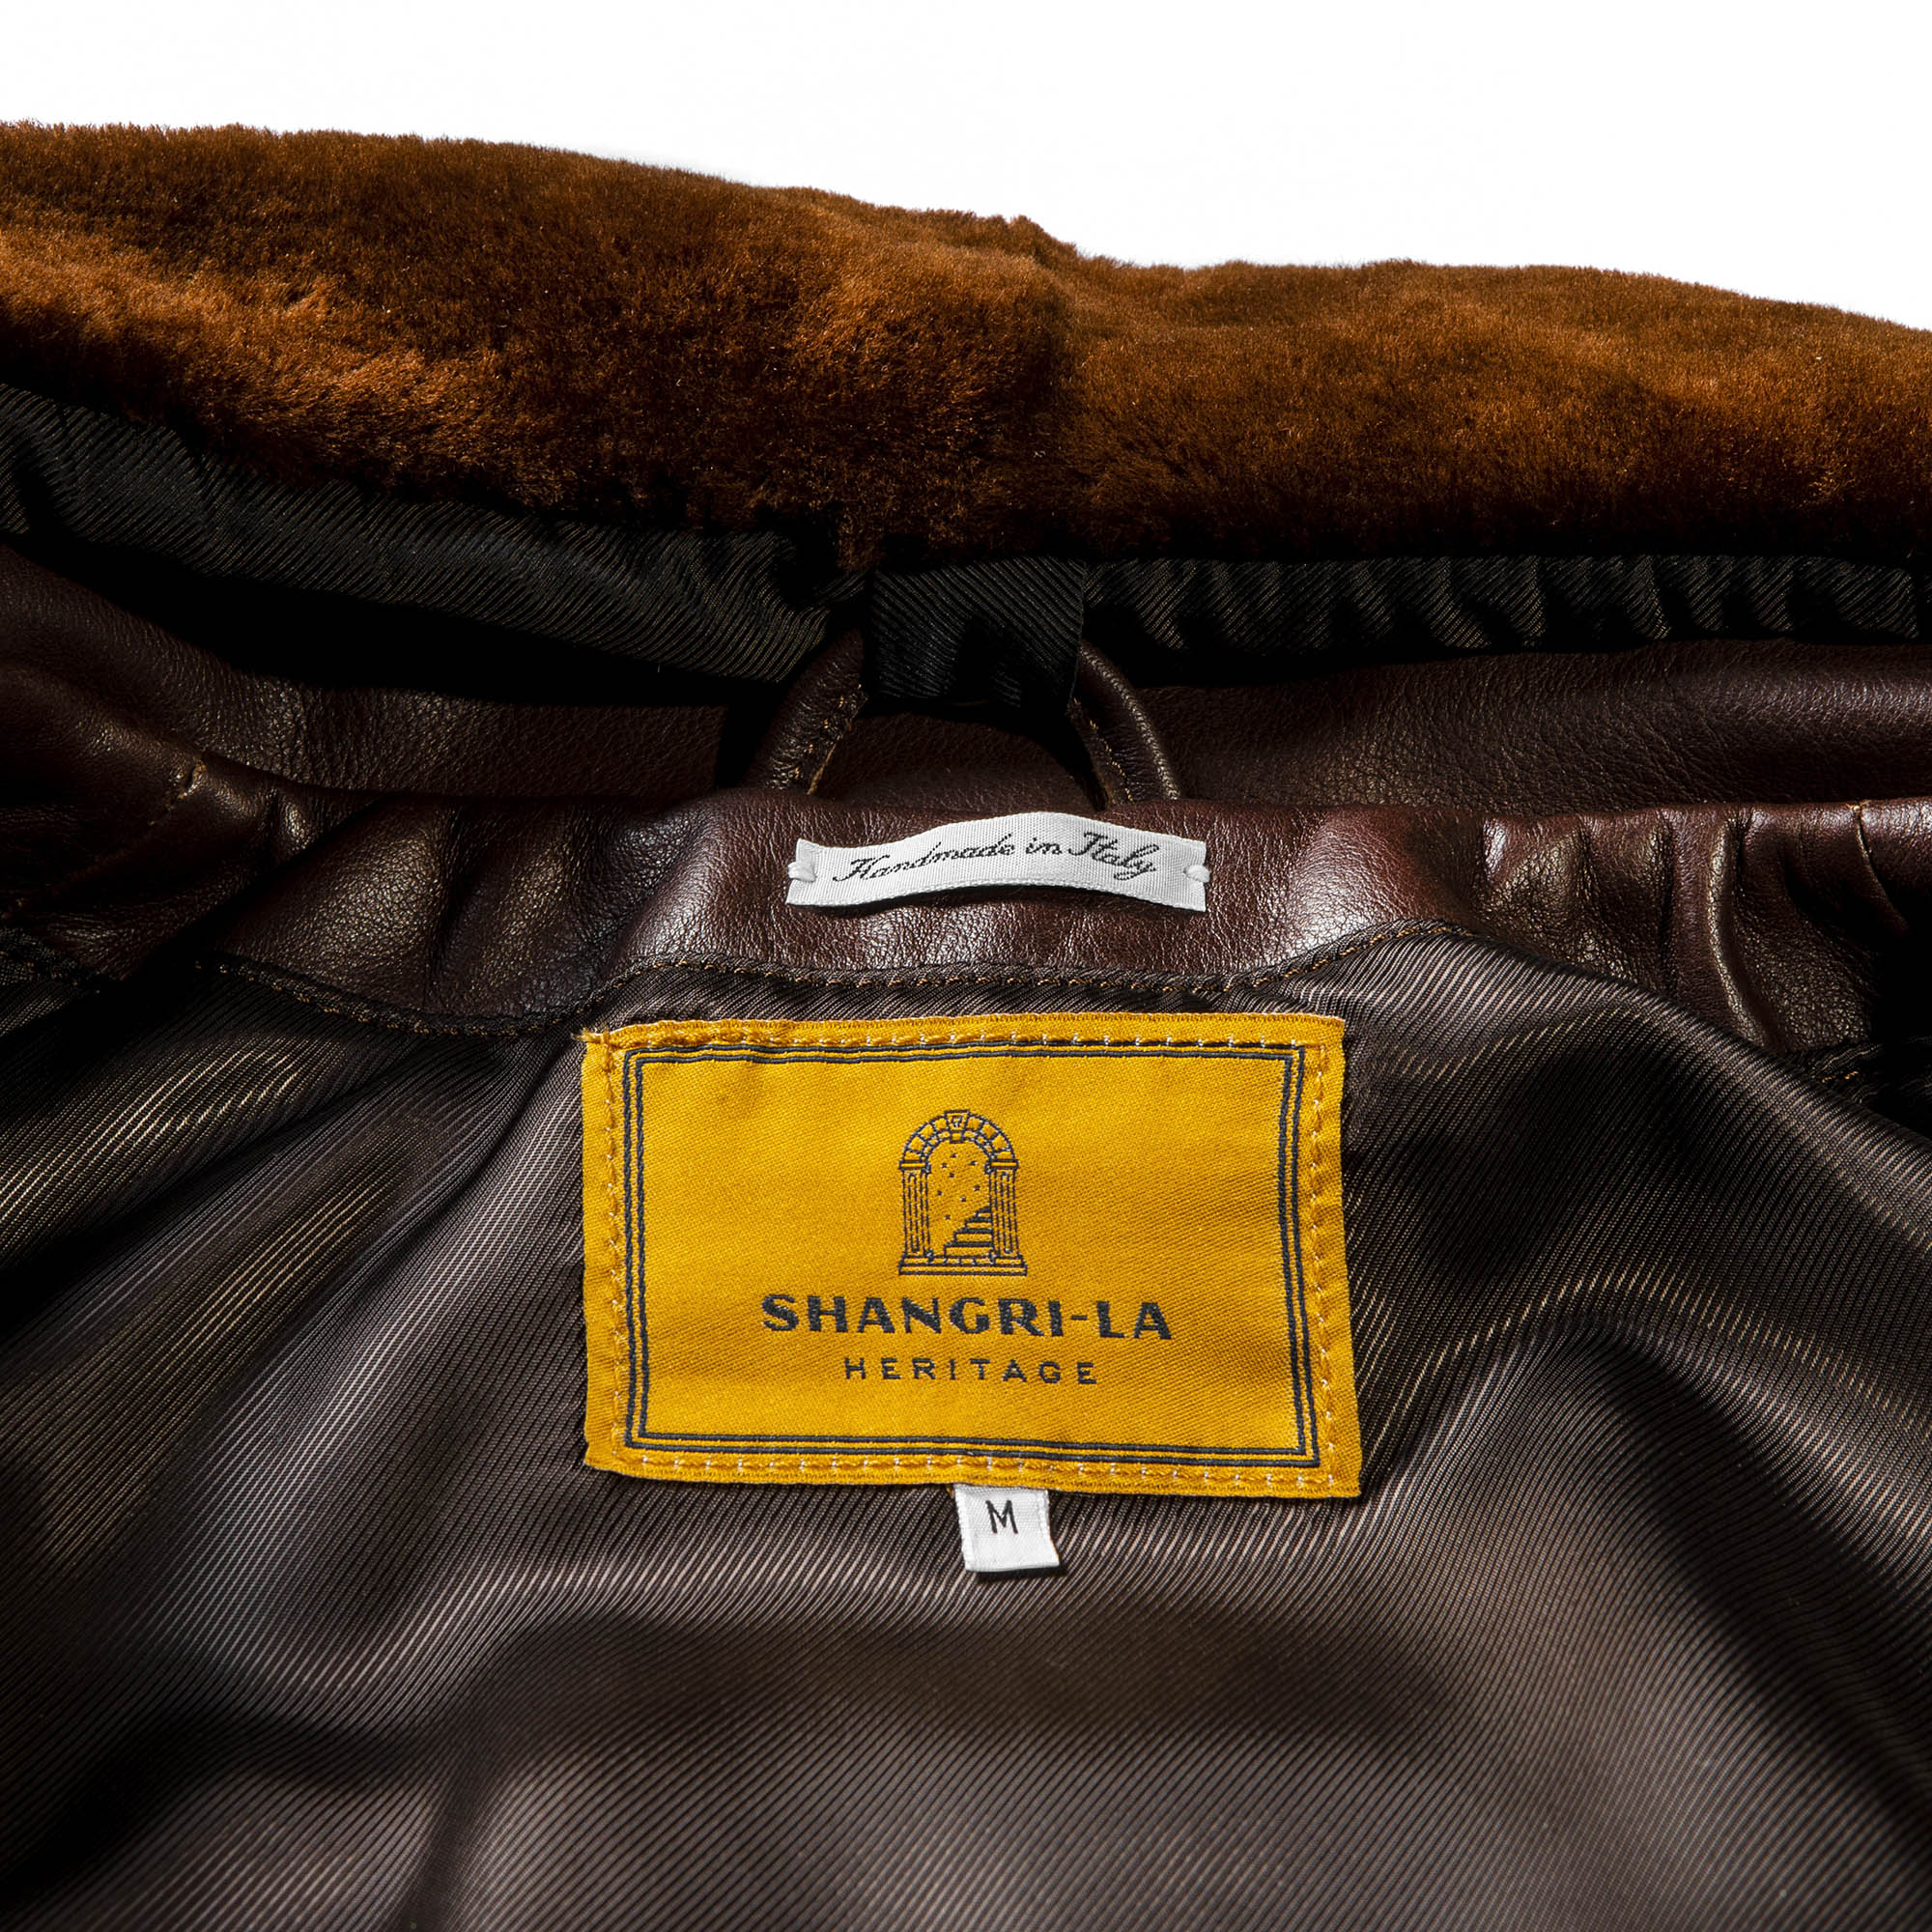 shangri-la-heritage-varenne-brown-steerhide-shearling-jacket-still-life-label